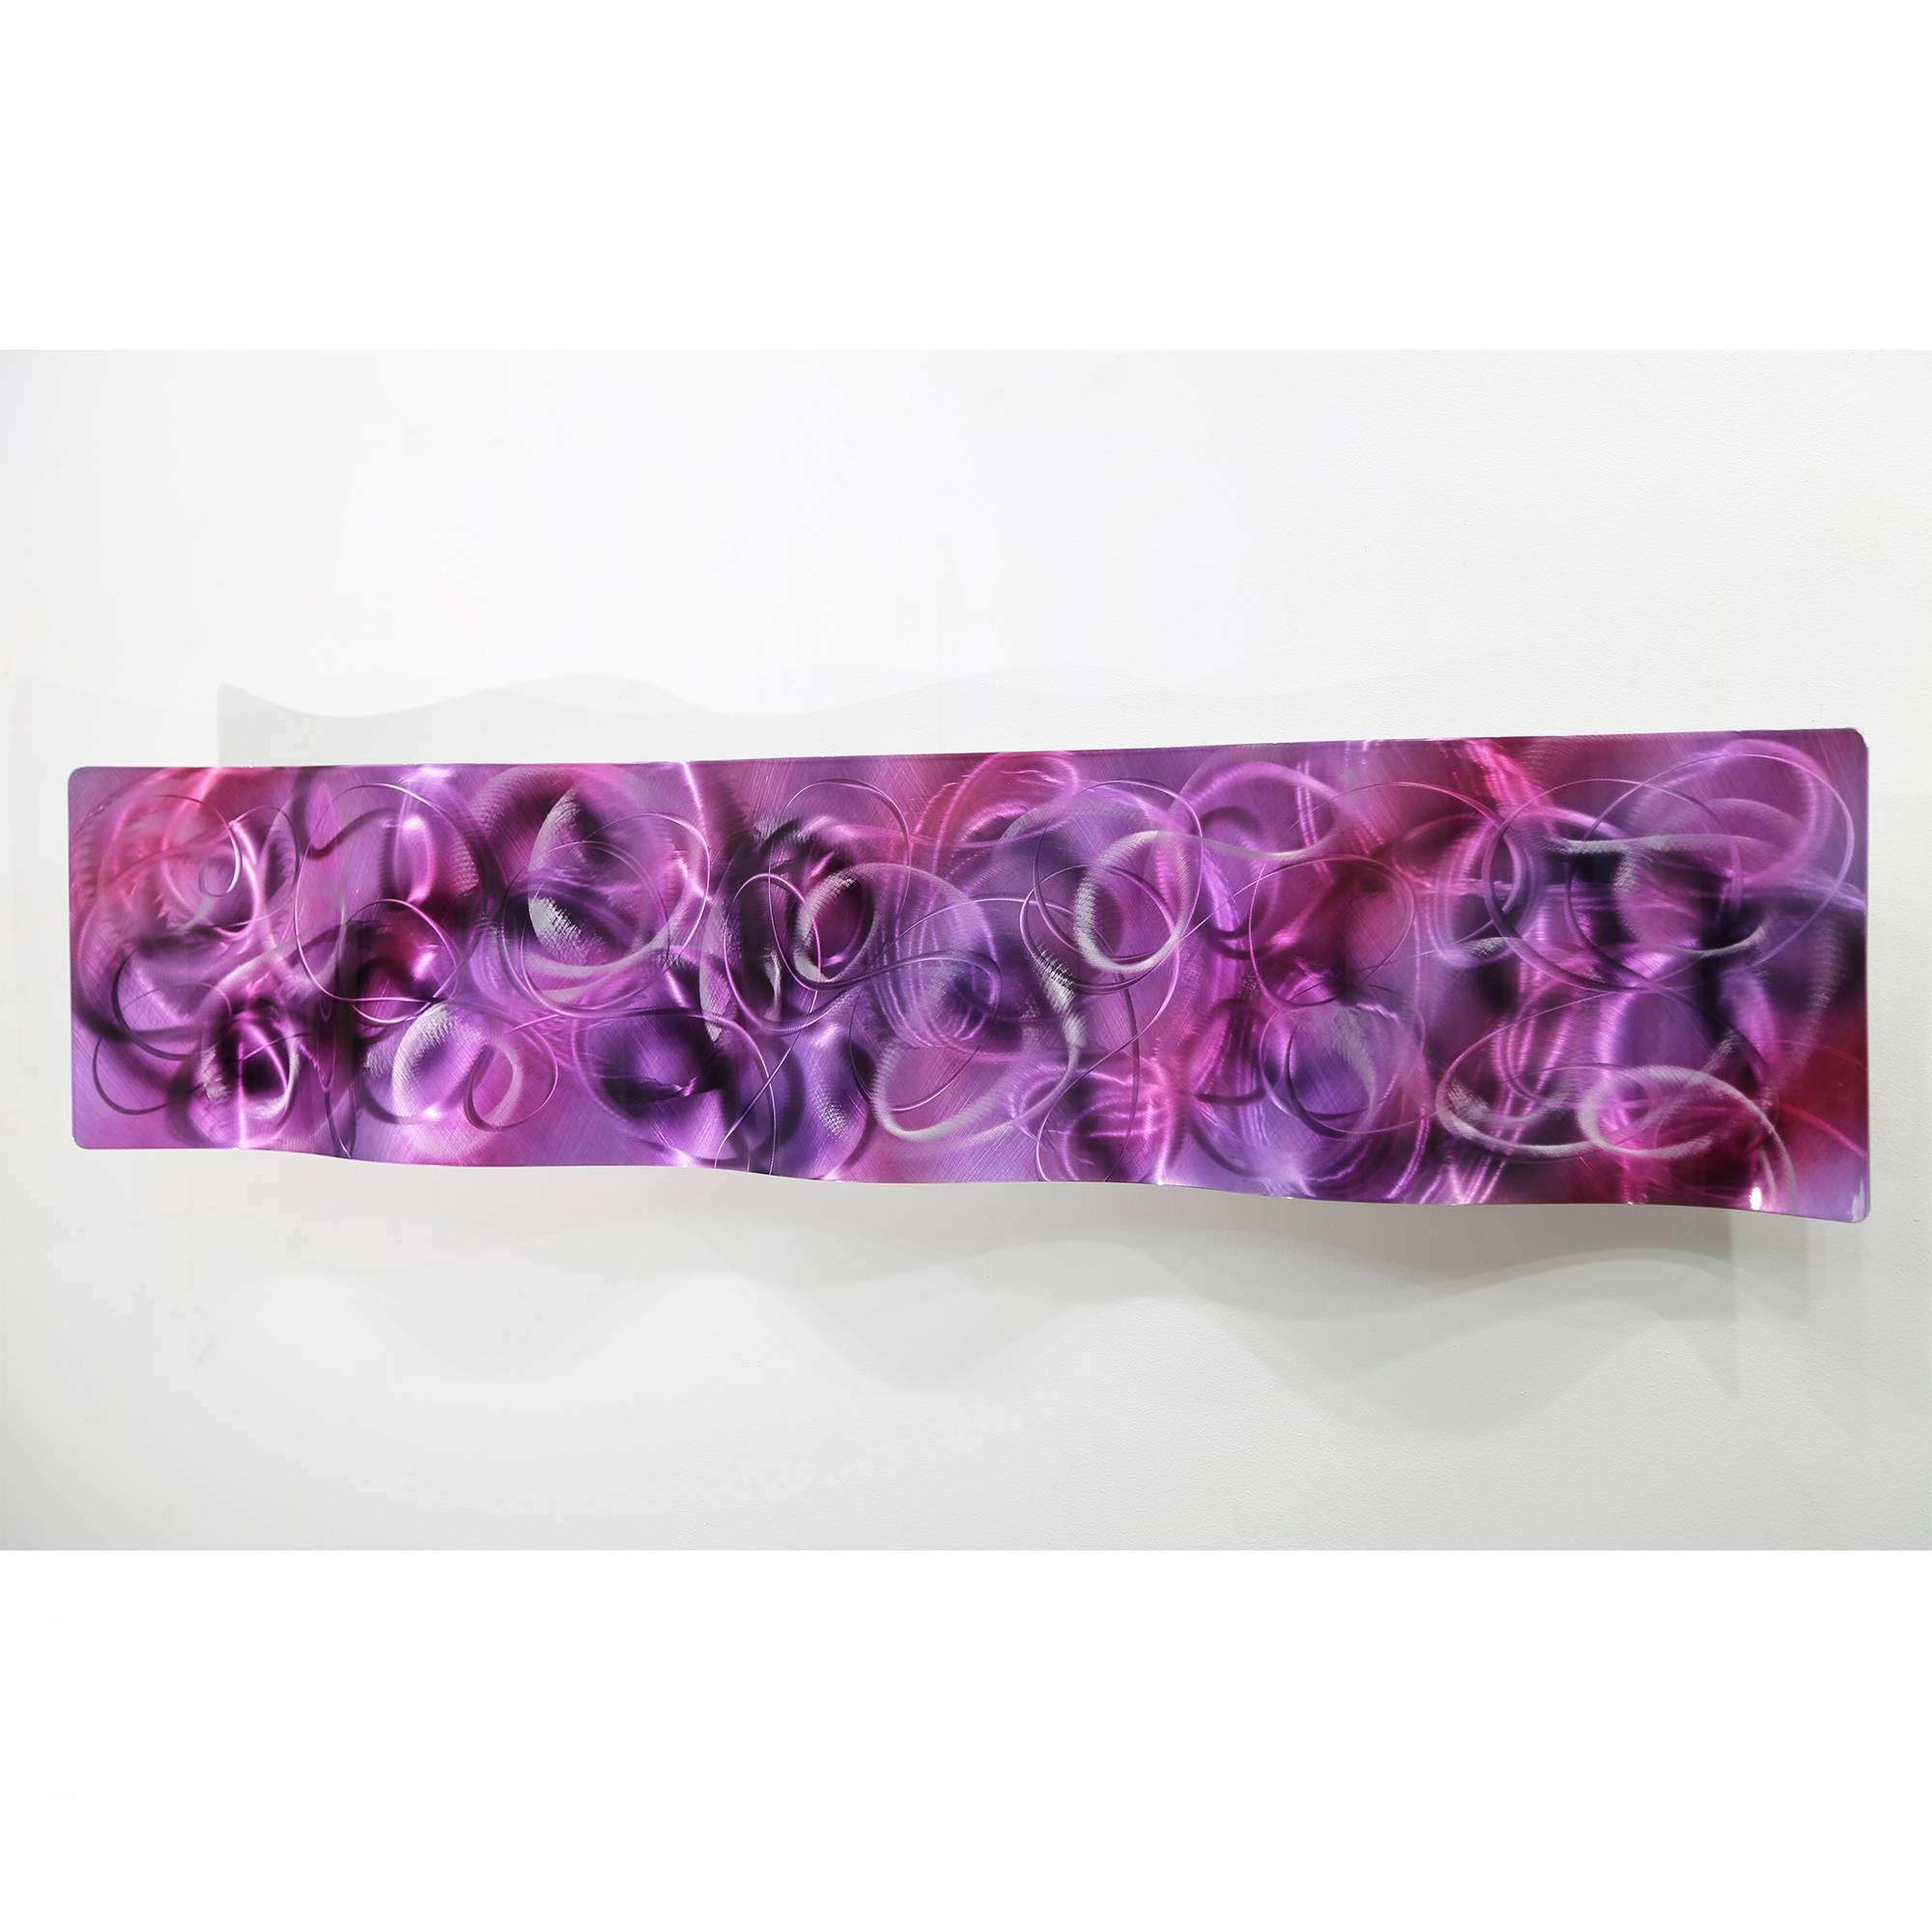 Metal Abstract Modern Painting Wall Art Sculpture Purple Majesty Throughout Most Up To Date Purple Abstract Wall Art (View 3 of 20)